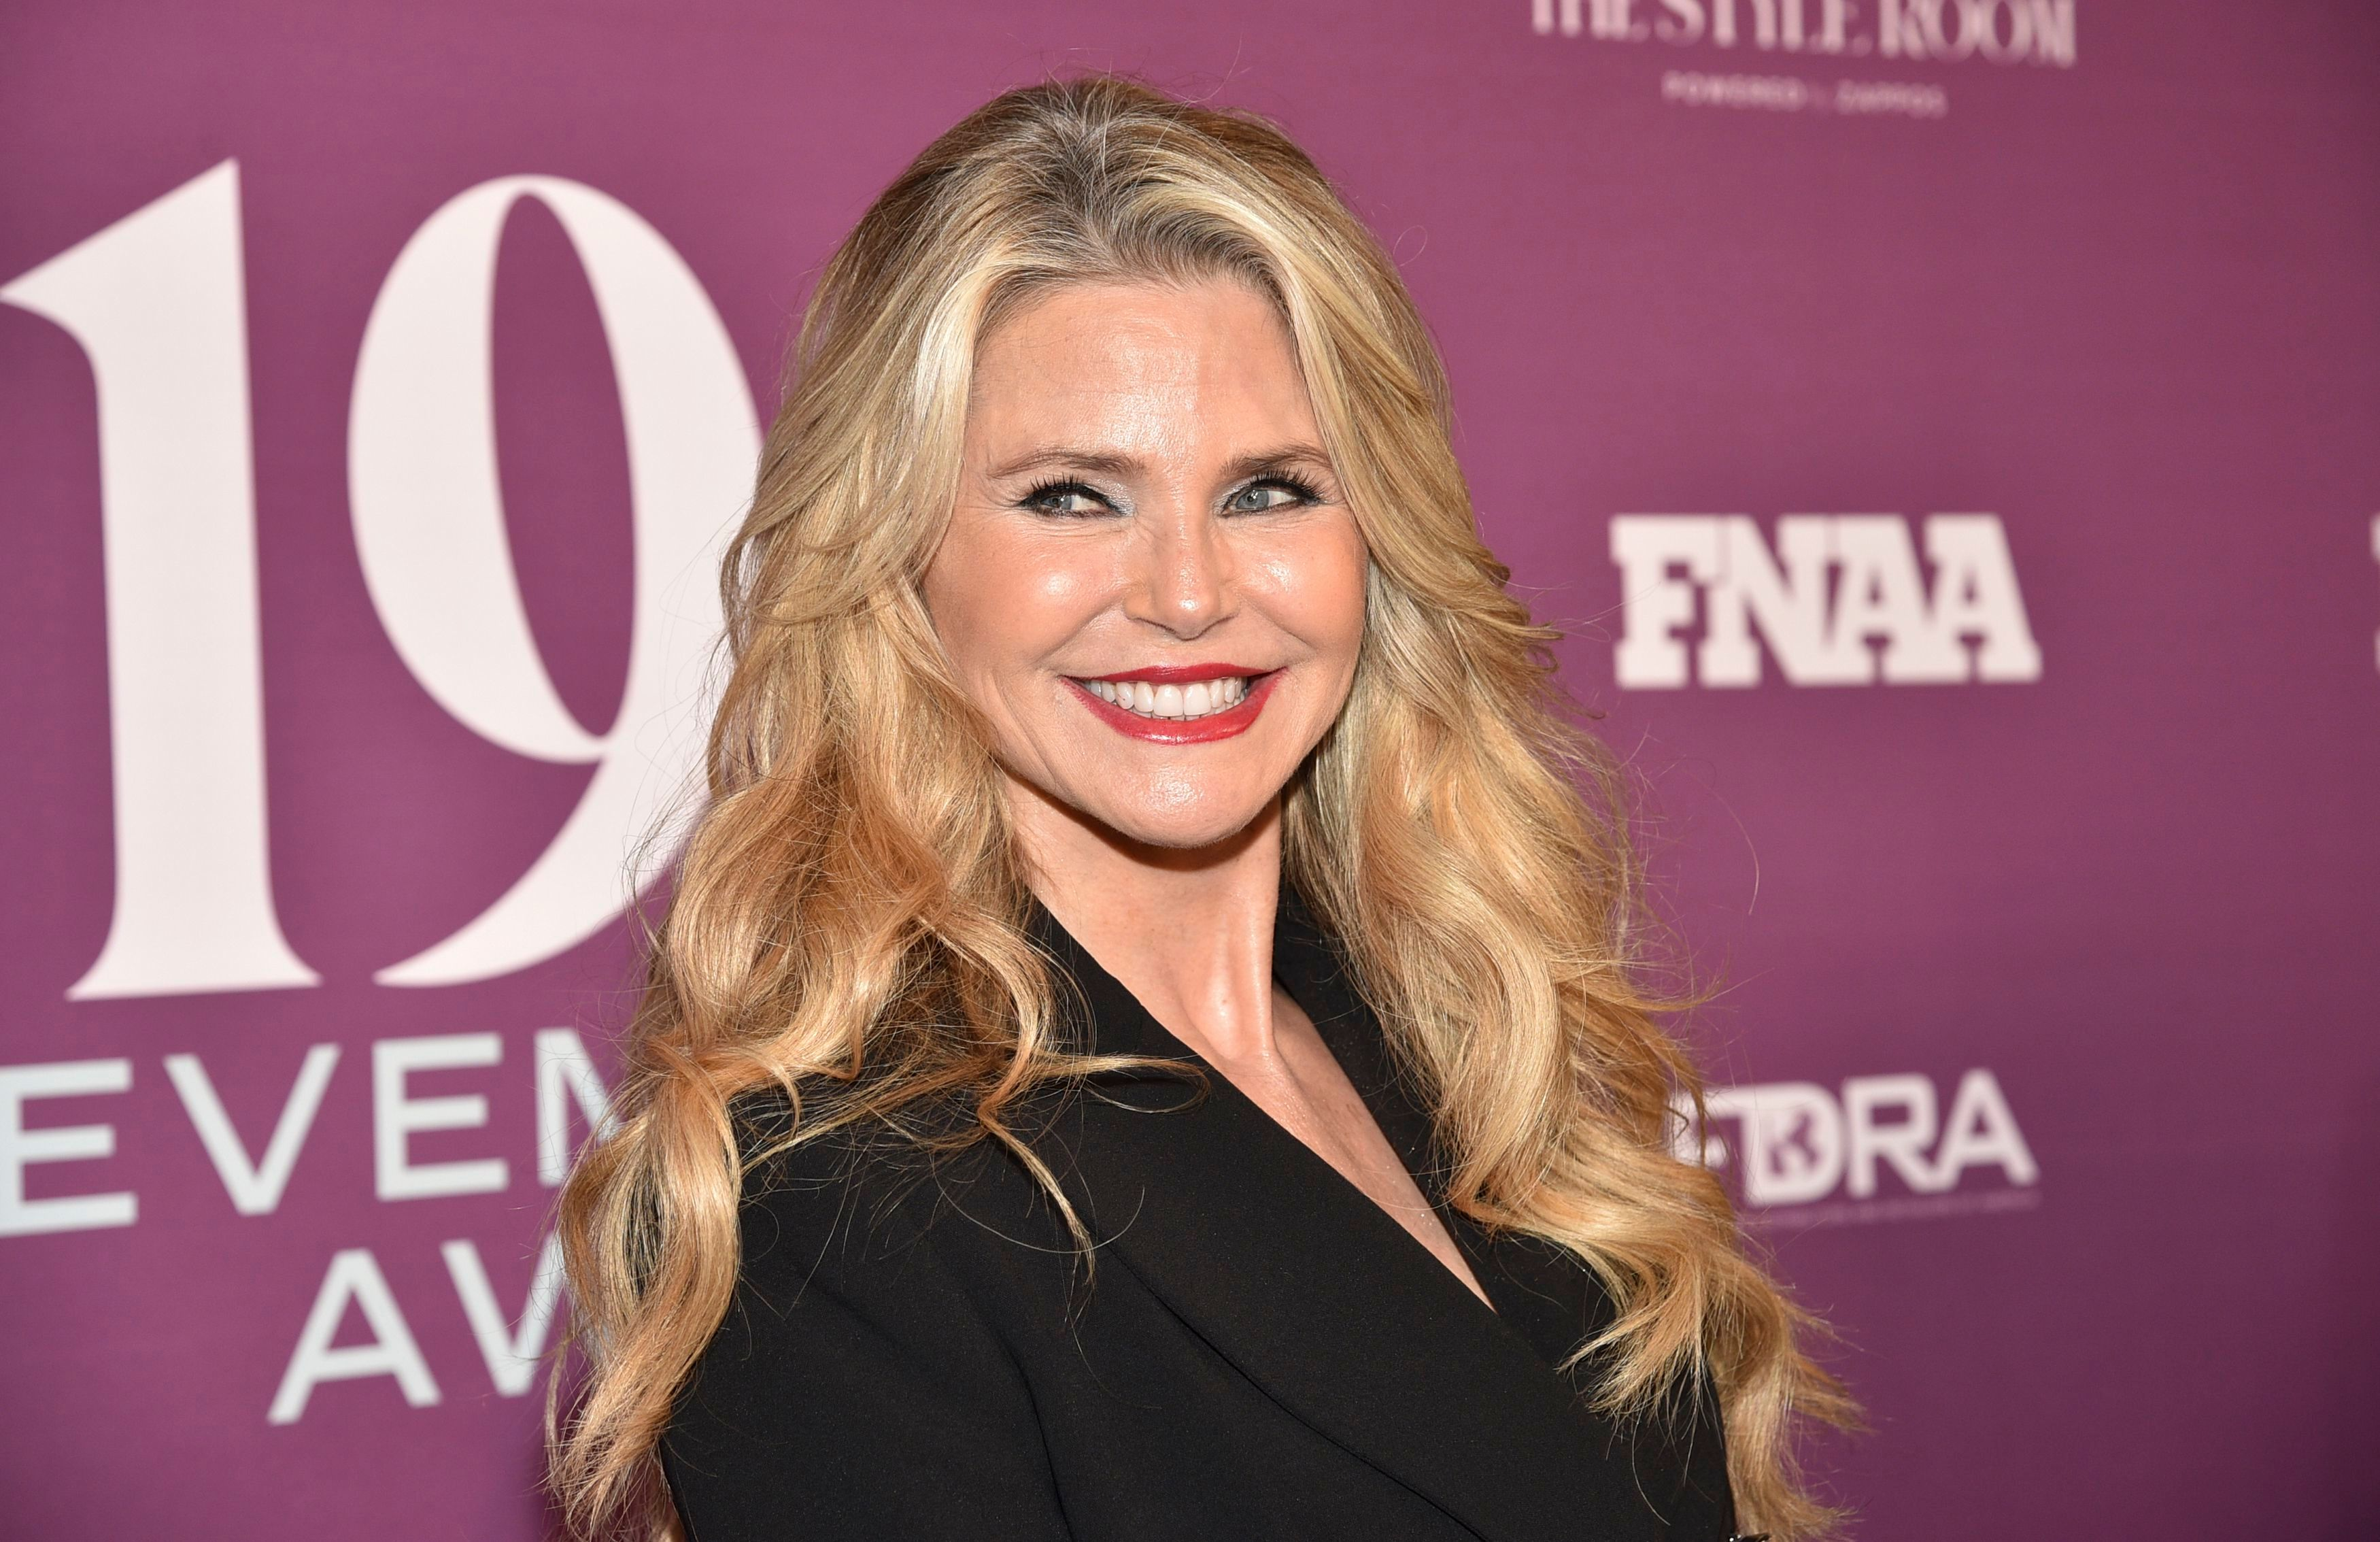 Christie Brinkley Reveals She's Getting Surgery for Her 'Dancing With the Stars' Injury